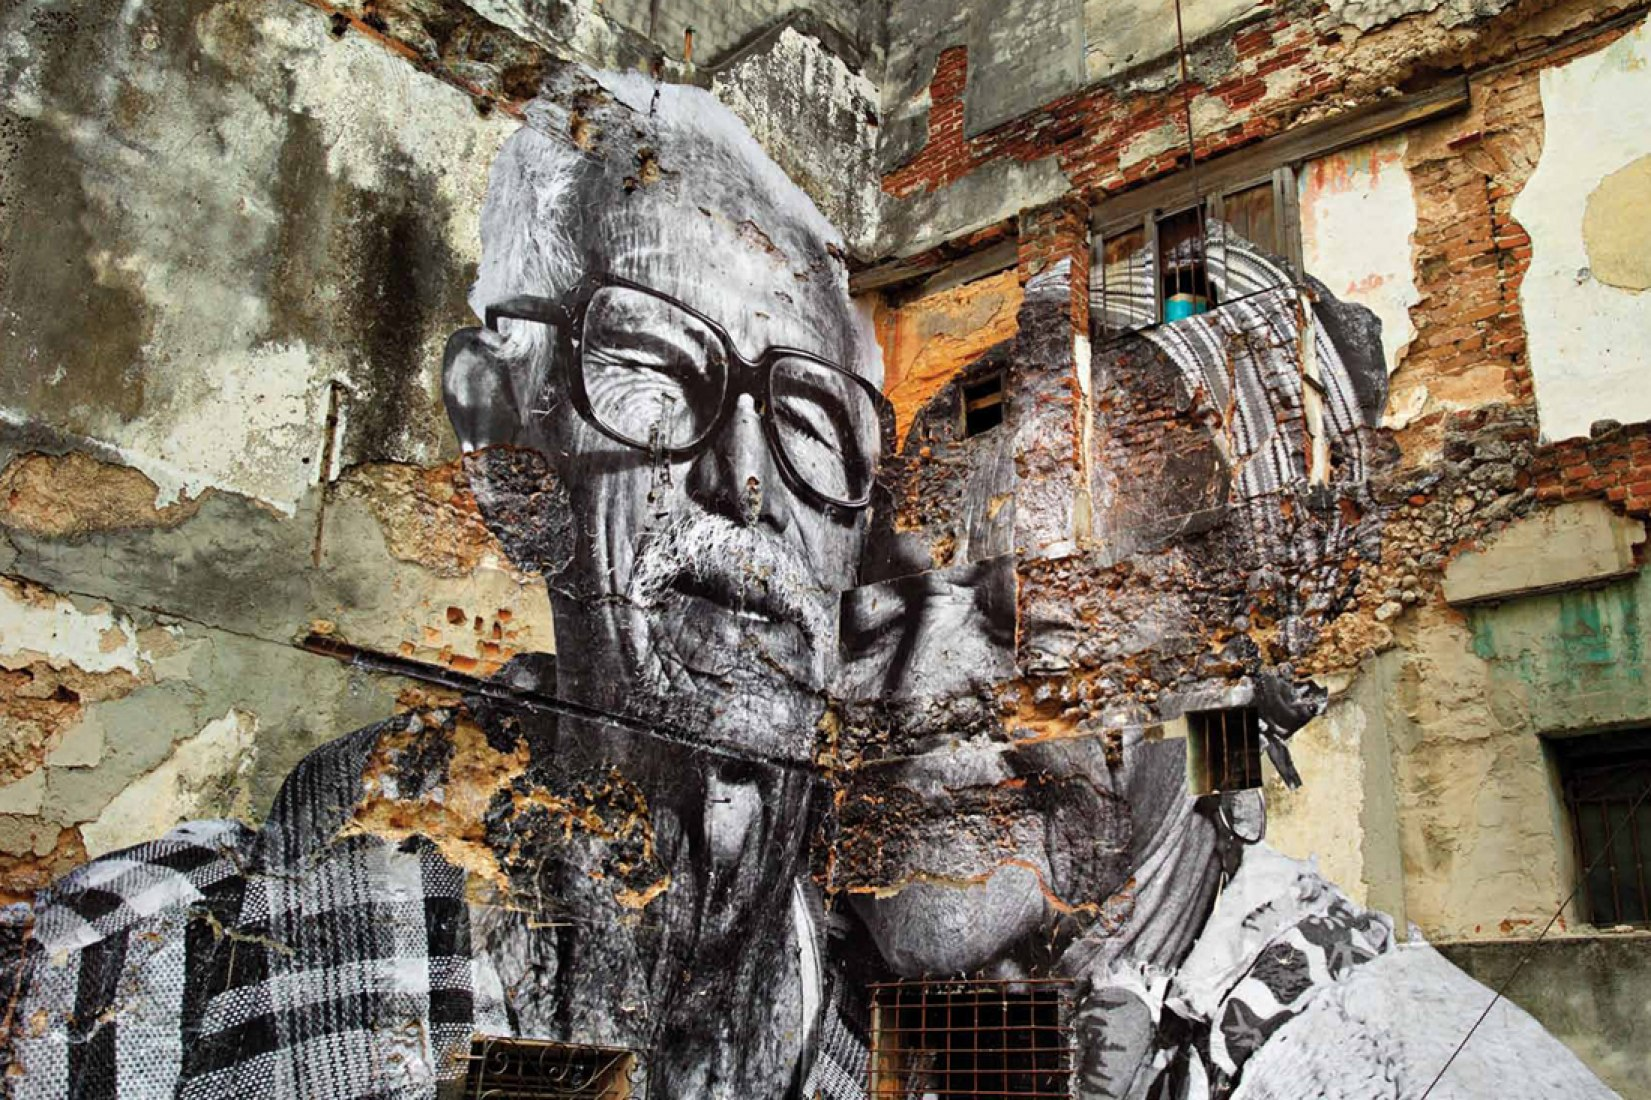 Rafael Lorenzo and Obdulia Manzano. The Wrinkles of the City - La Havana, by José Parlá and JR.